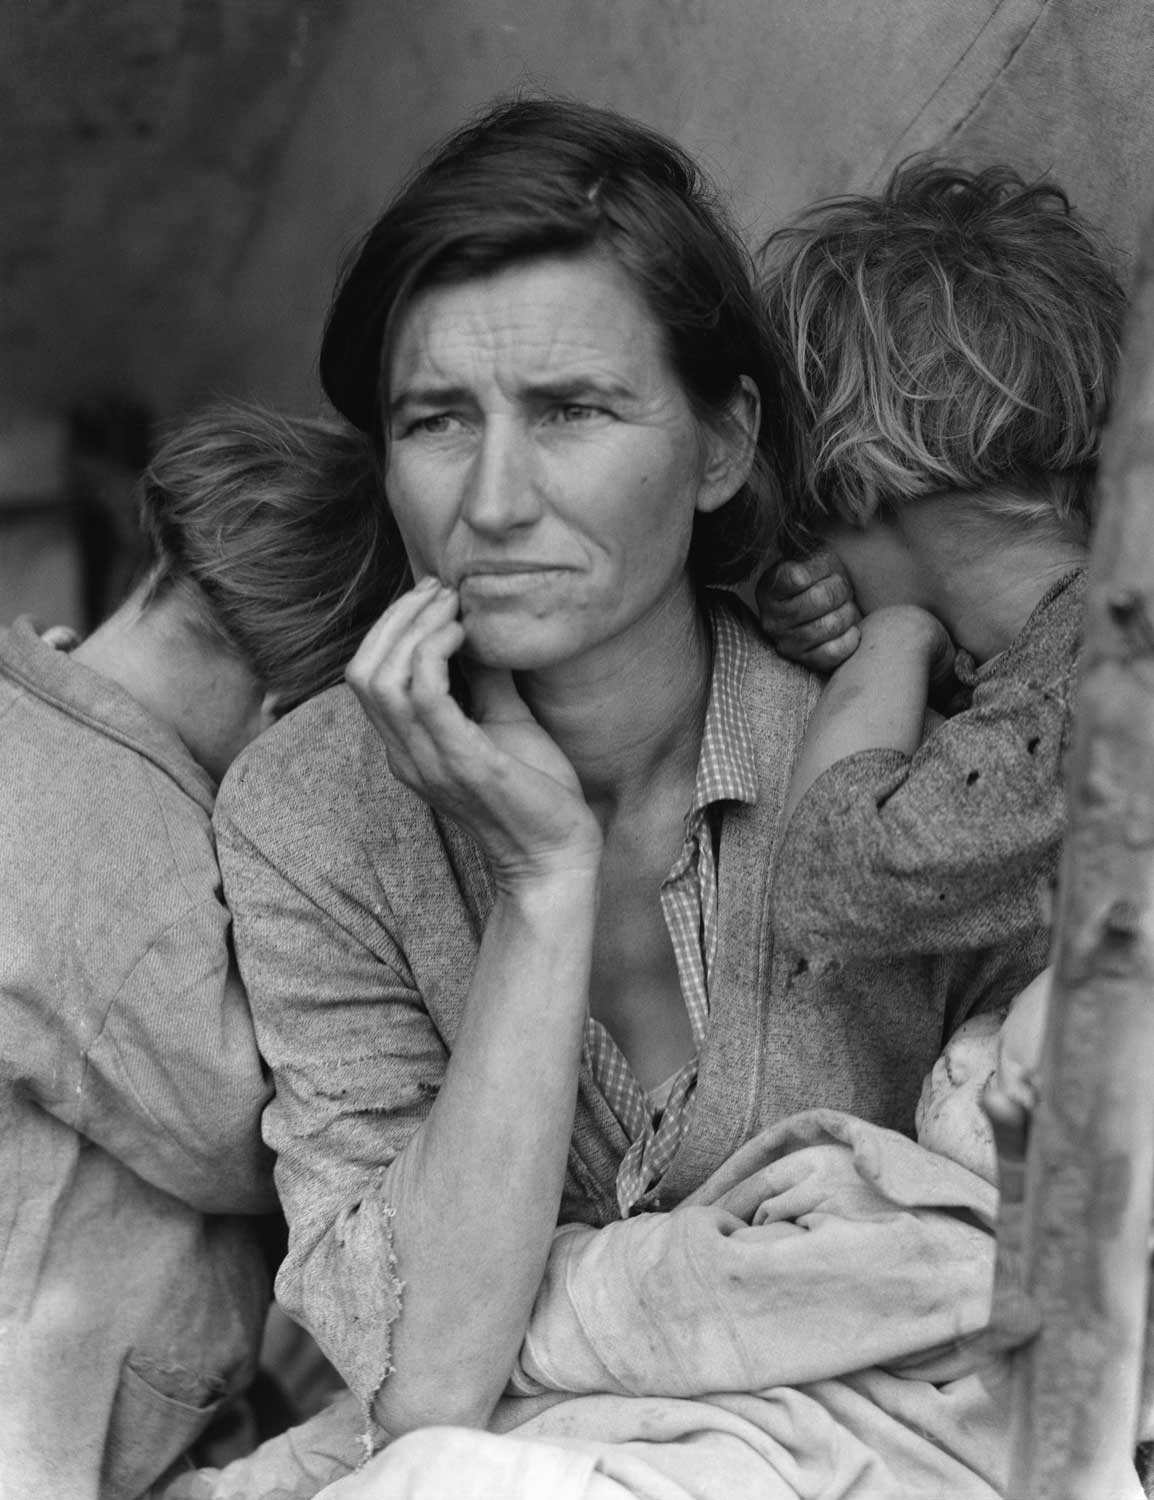 Migrant Mother by Dorothea Lange — A poverty-stricken migrant mother (Florence Owens Thompson, 32) with three young children gazes off into the distance. This photograph, commissioned by the FSA, came to symbolize the Great Depression for many Americans (Getty Images)